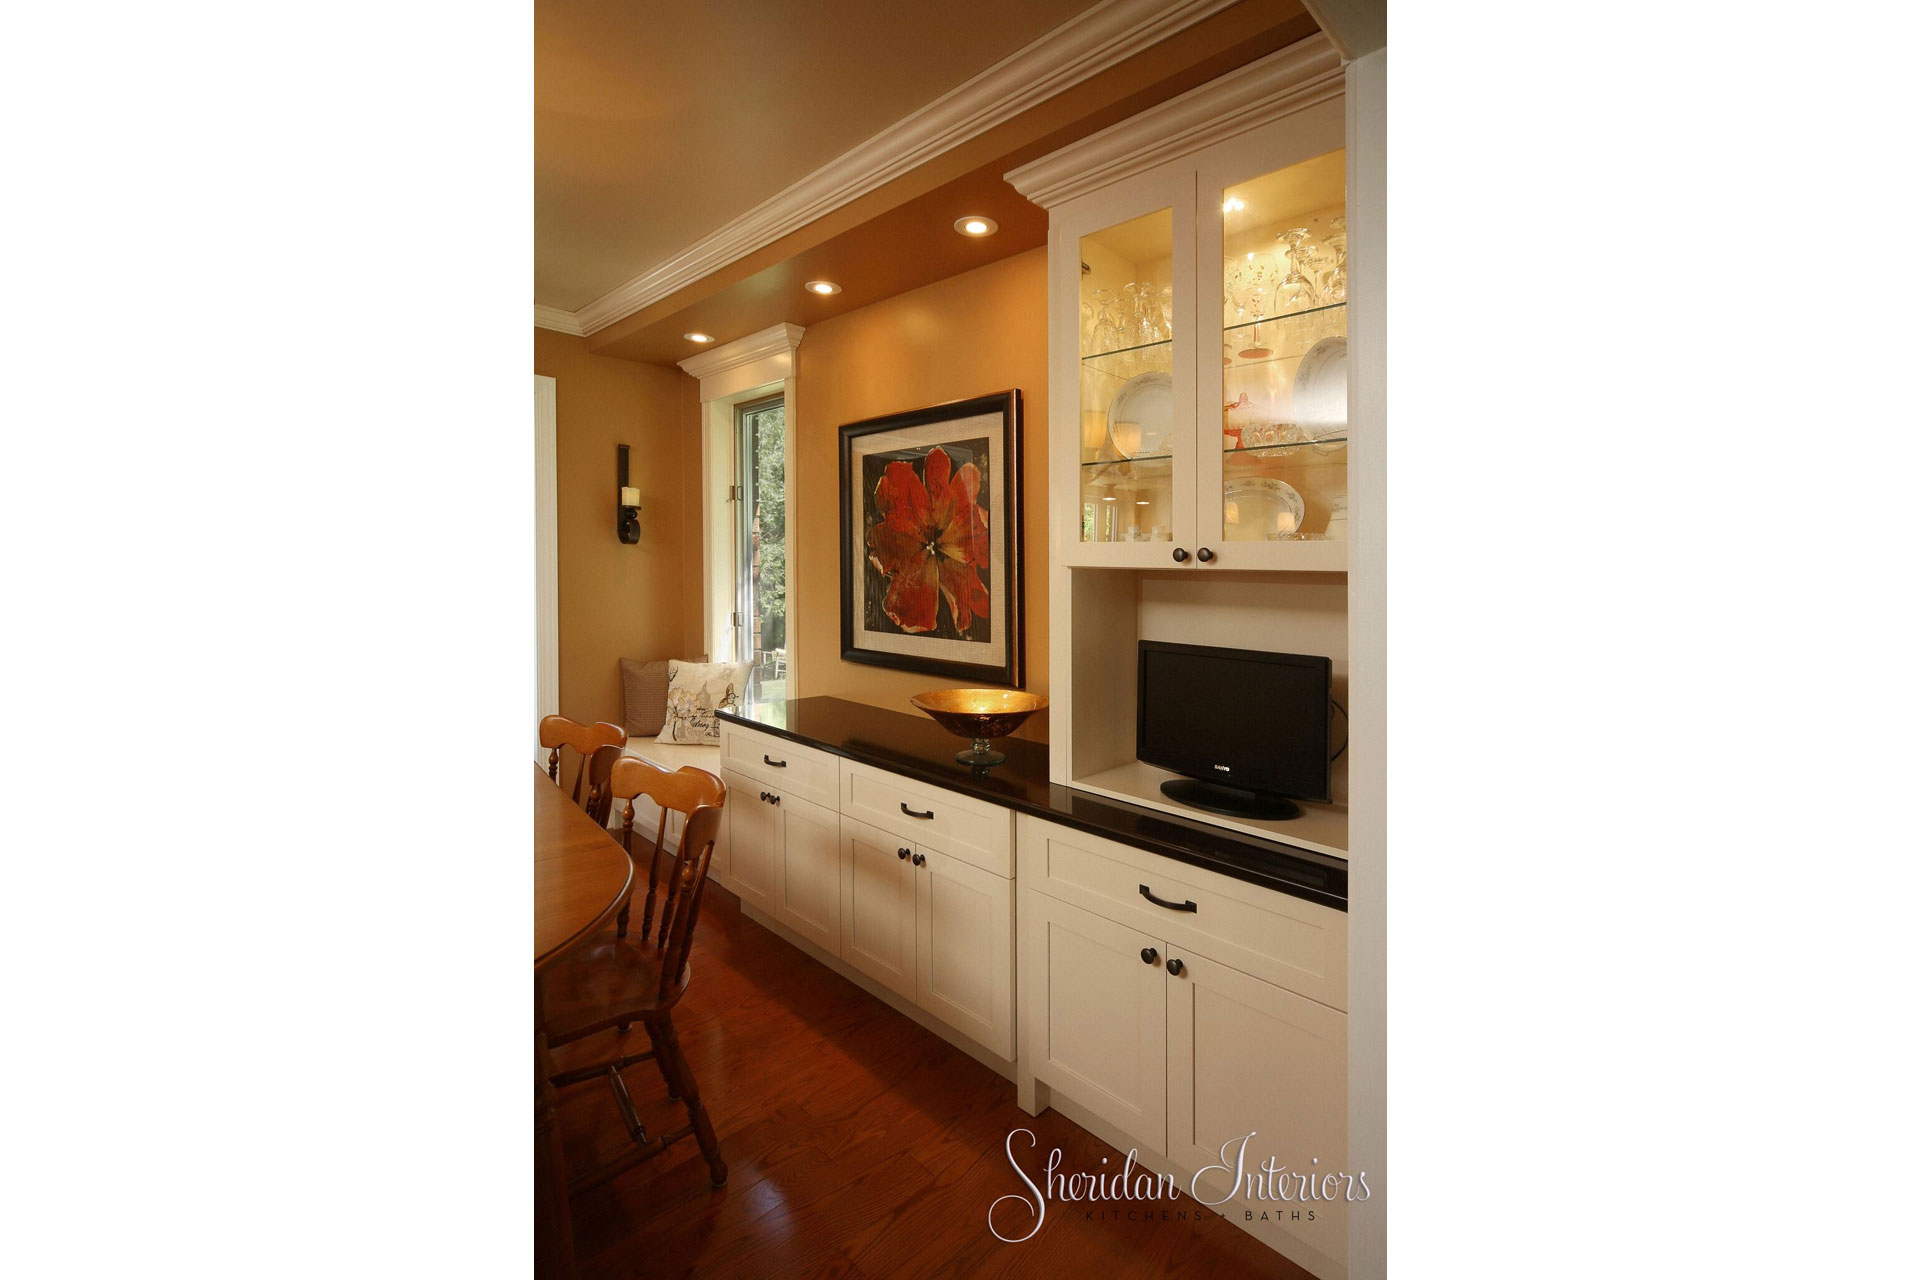 Dining Room and hutch with quartz countertop - Sheridan Interiors